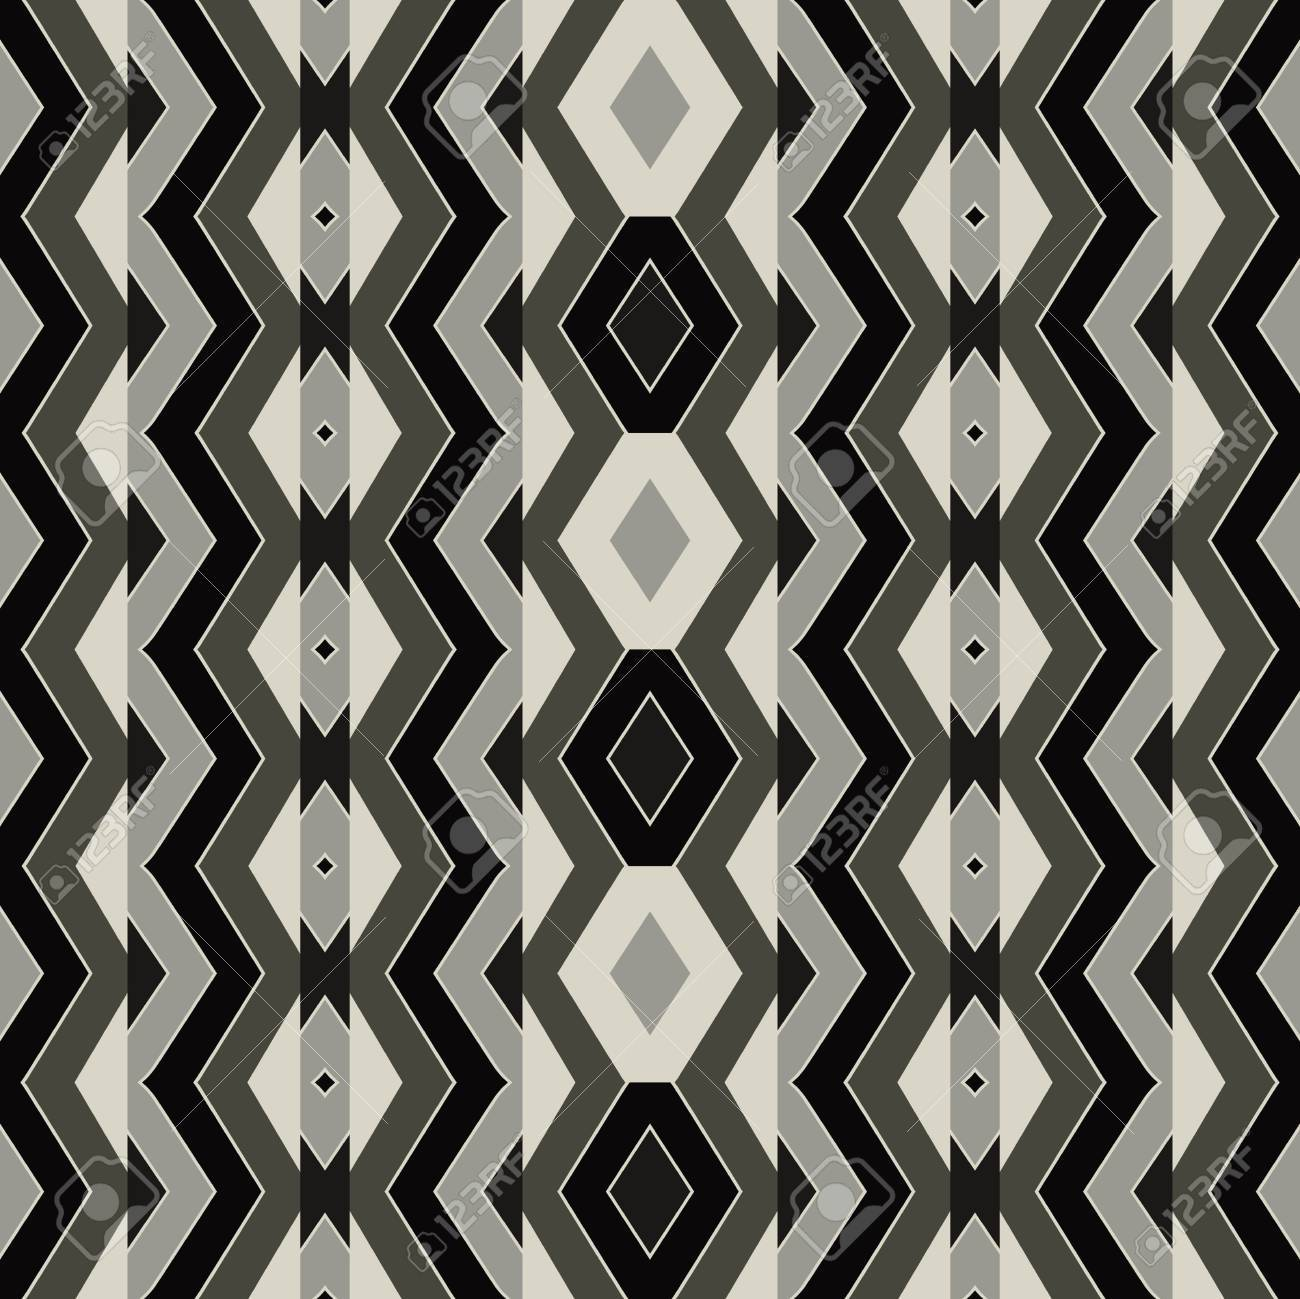 abstract pattern wallpaper seamless background  Vector illustration Stock Vector - 14168360